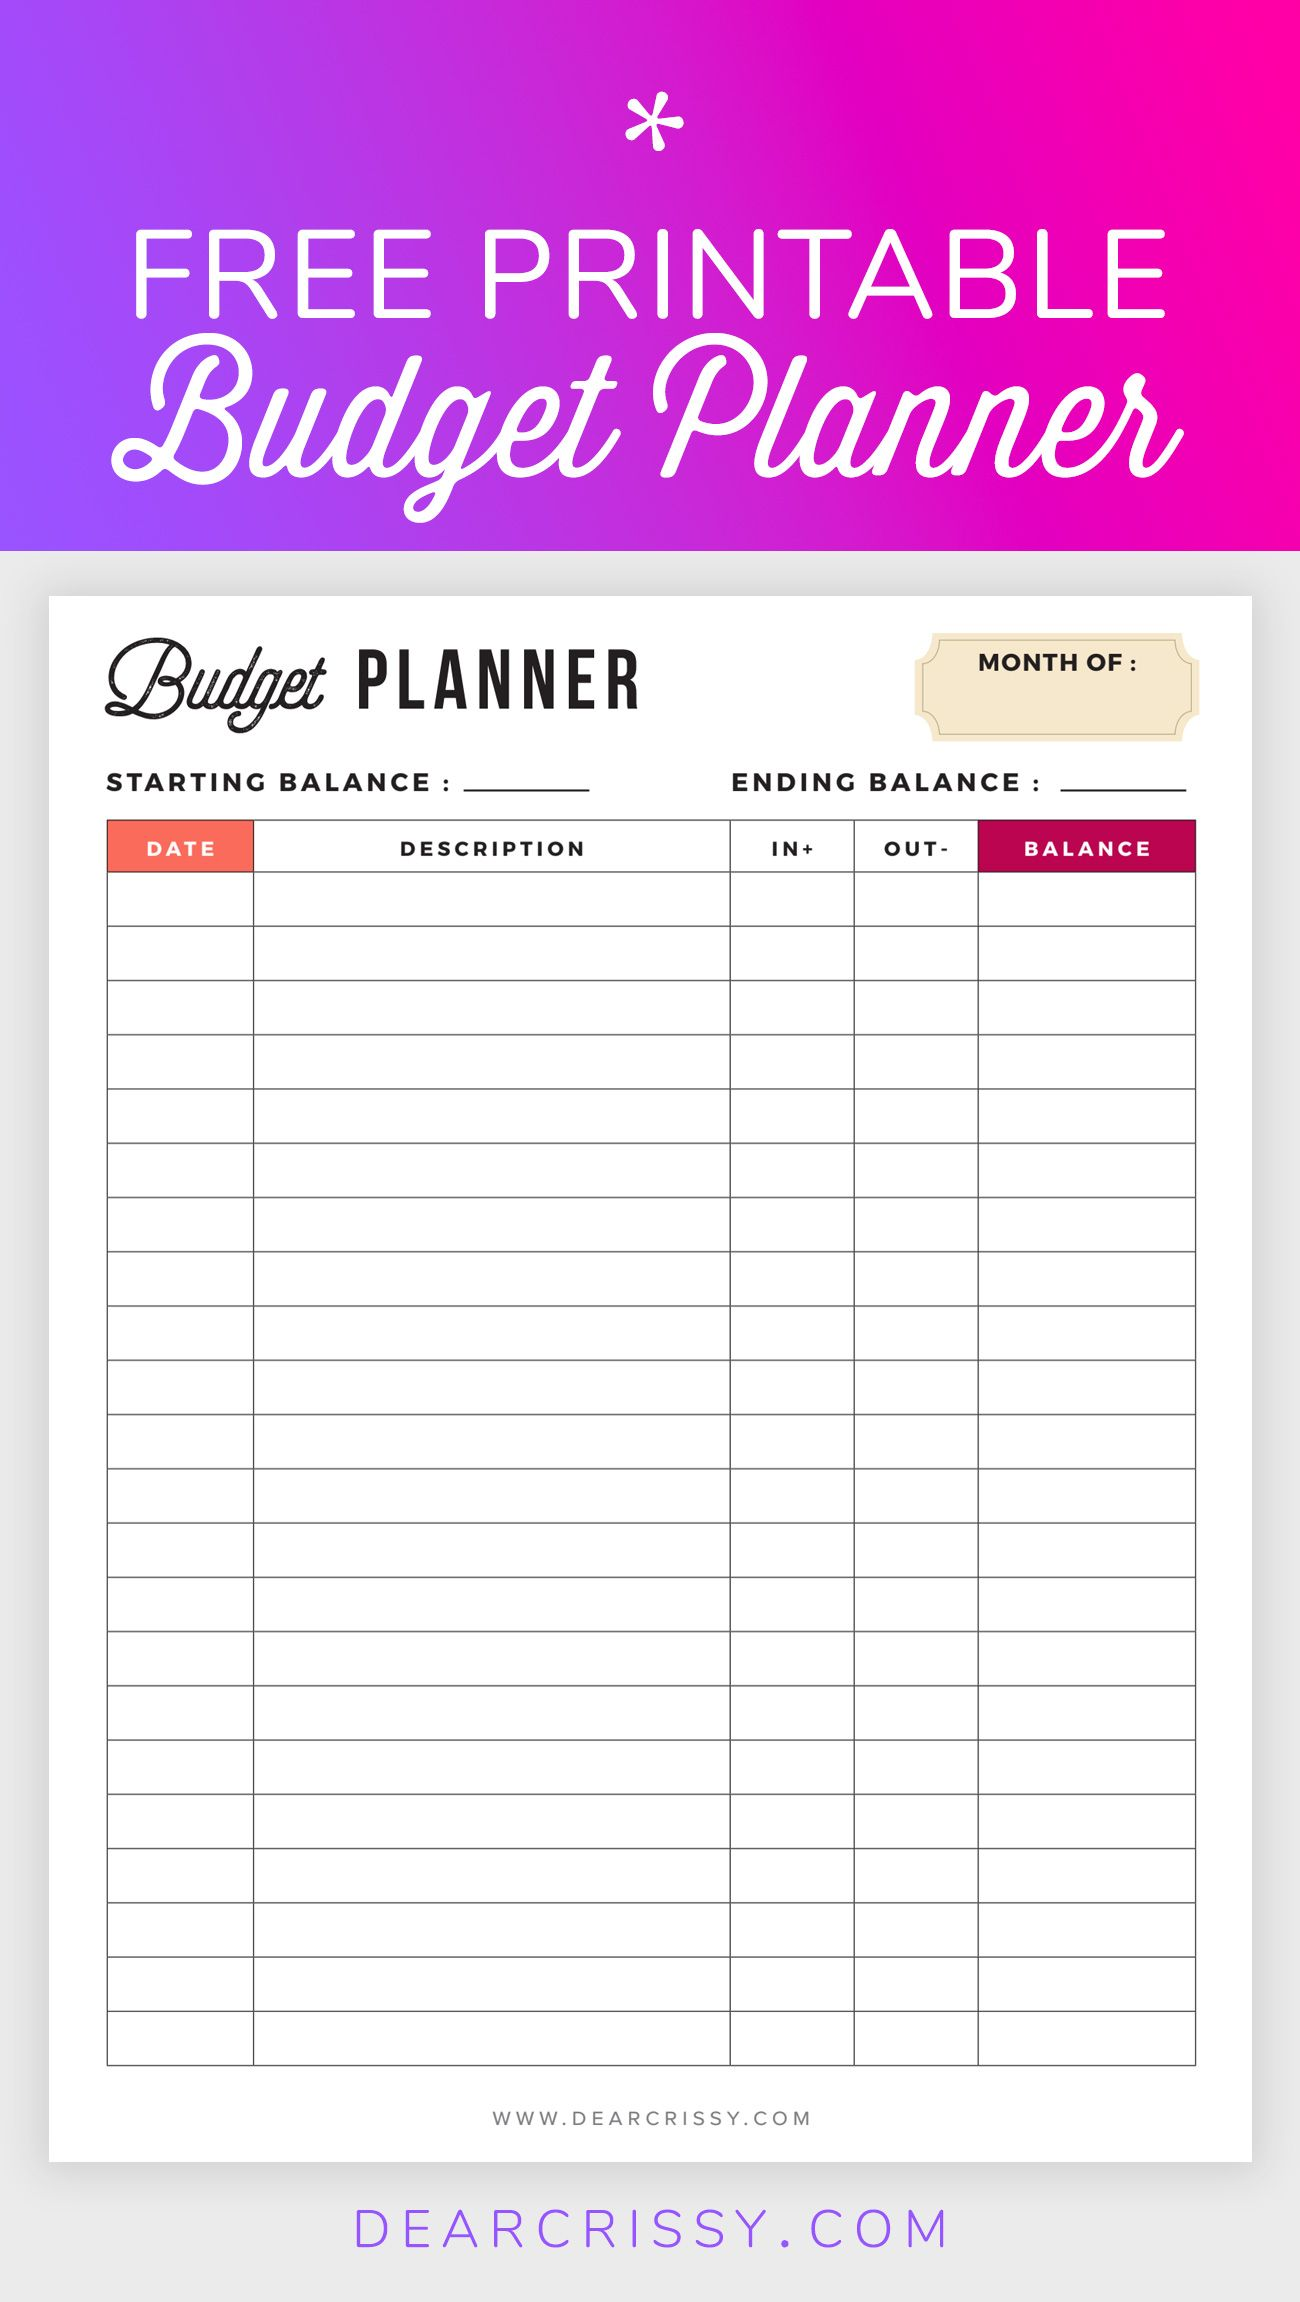 graphic regarding Budget Planner Printable named No cost Finances Planner Printable - Printable Finance Planner